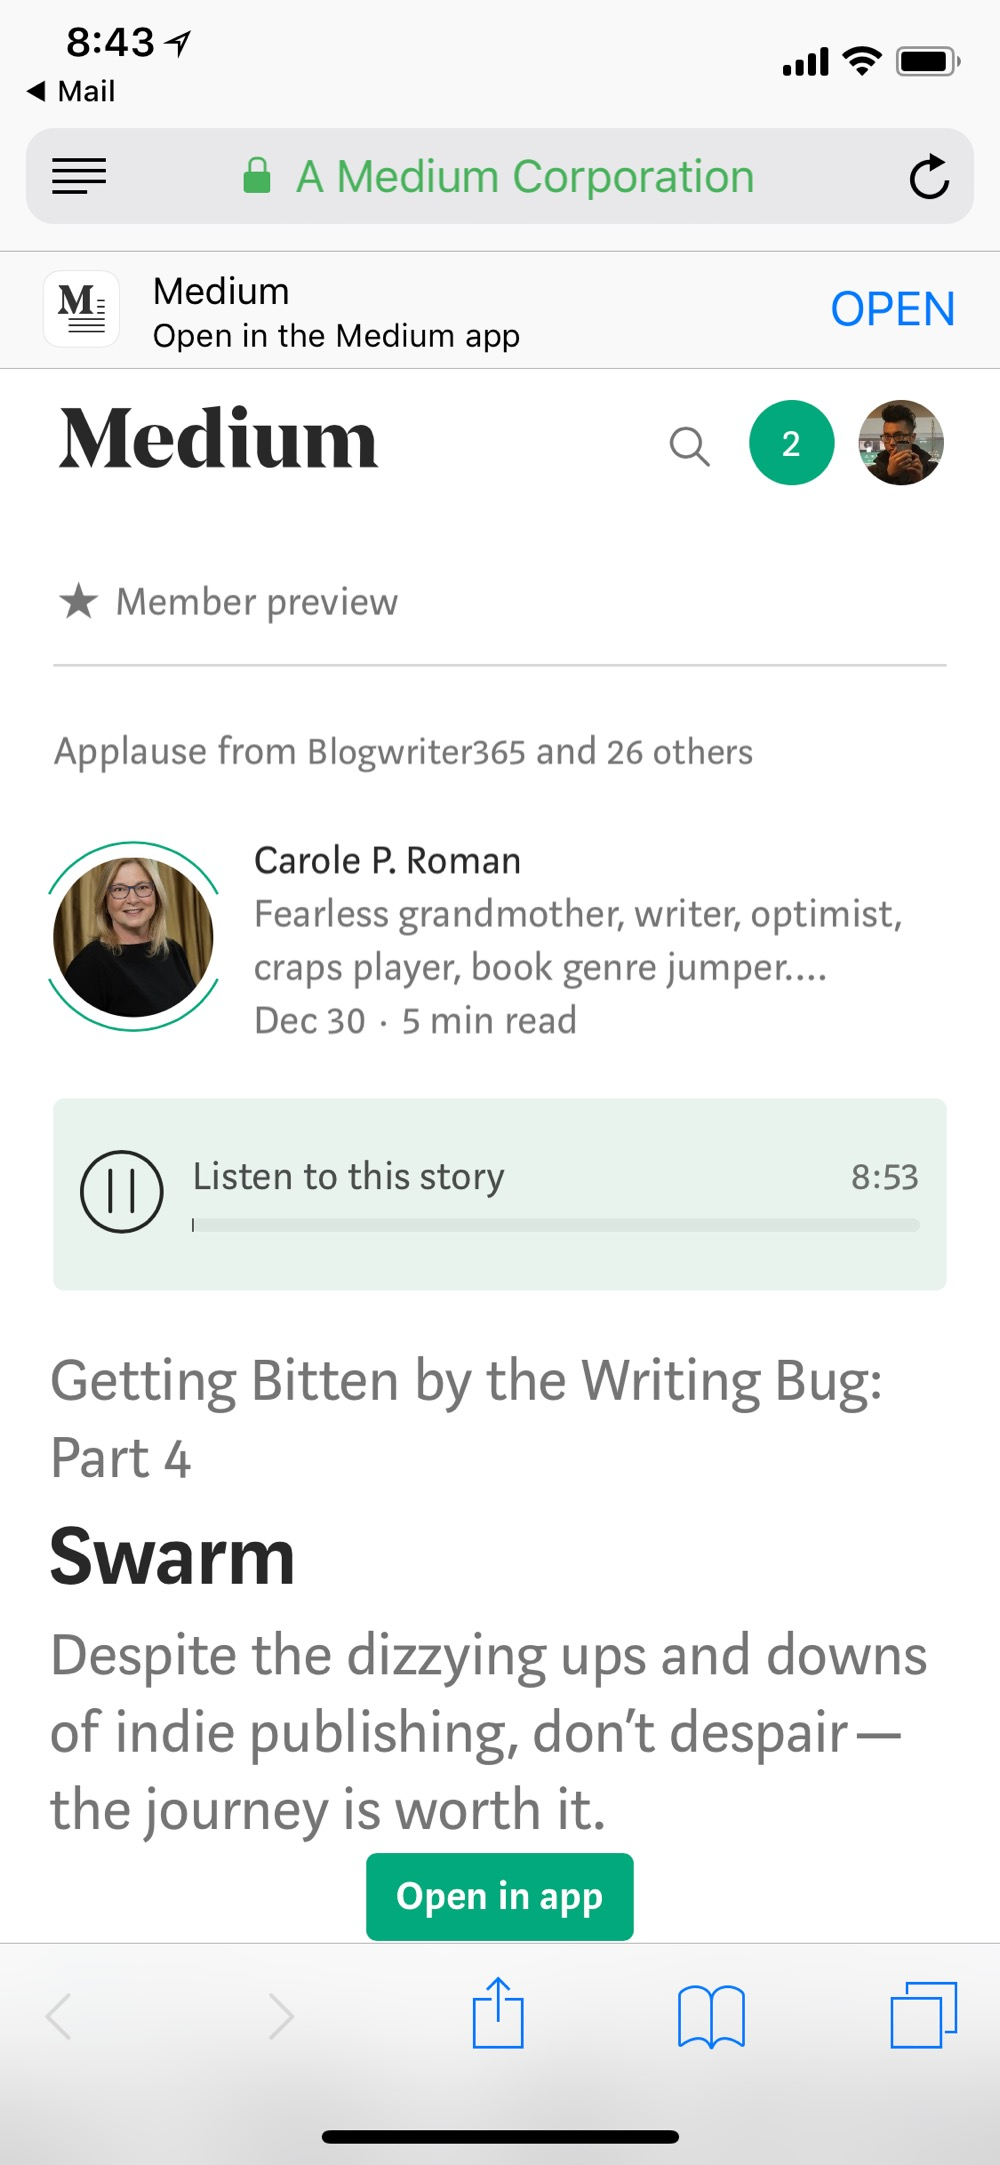 Does Medium come with audio narrationnow?